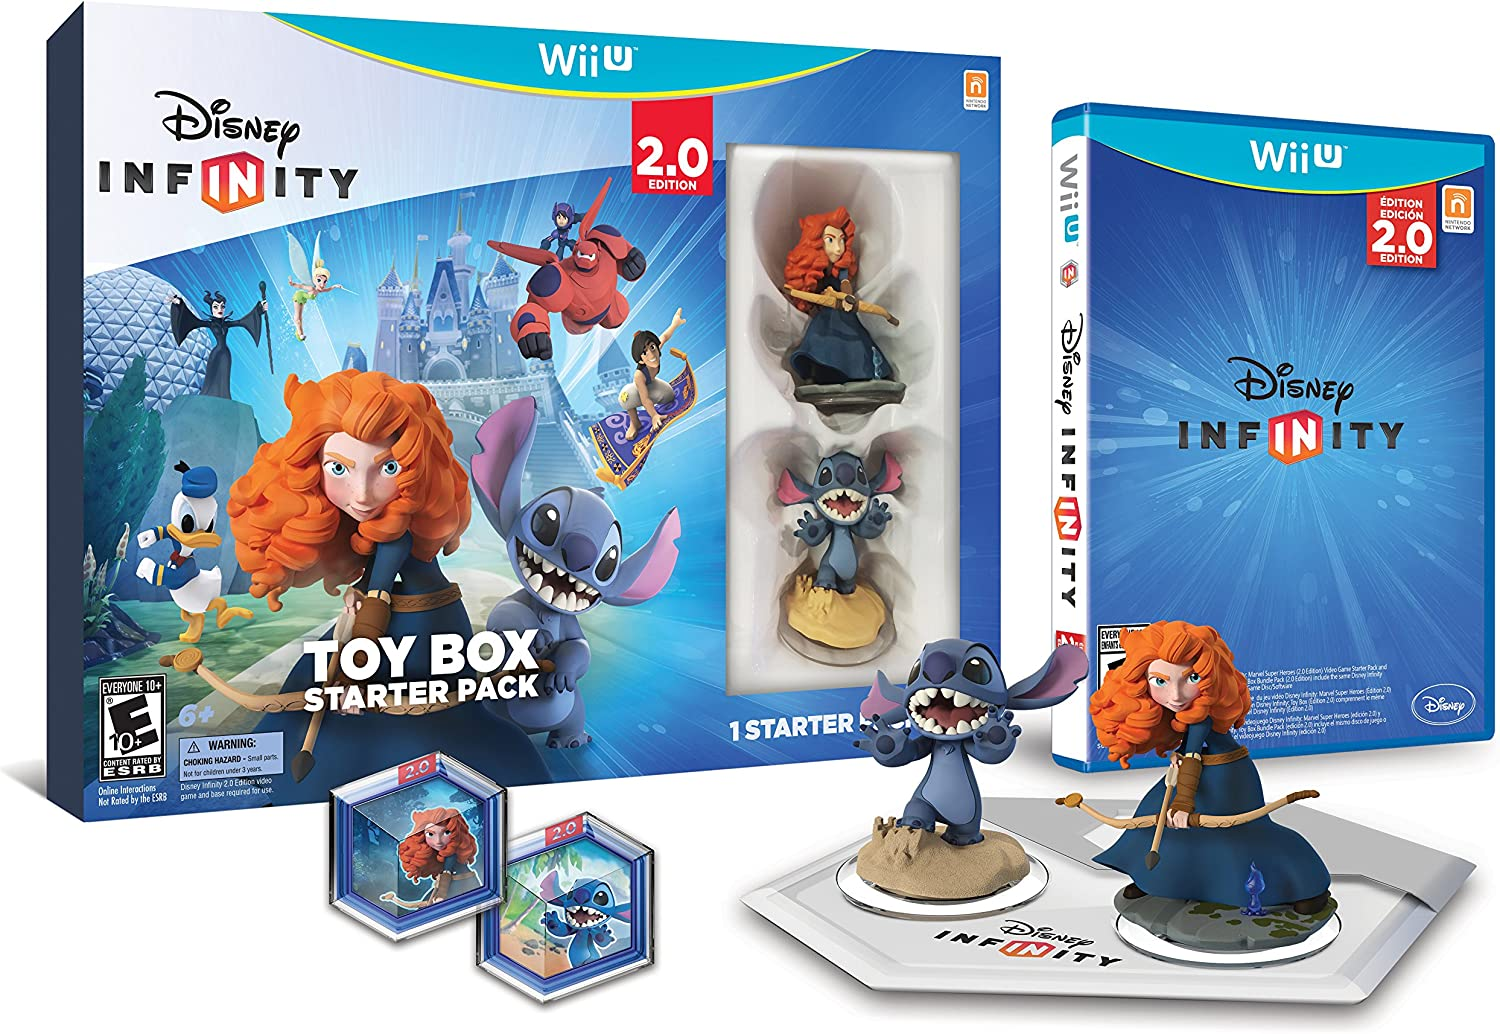 Disney INFINITY: Toy Box Starter Pack (2.0 Edition) - Wii U by ...